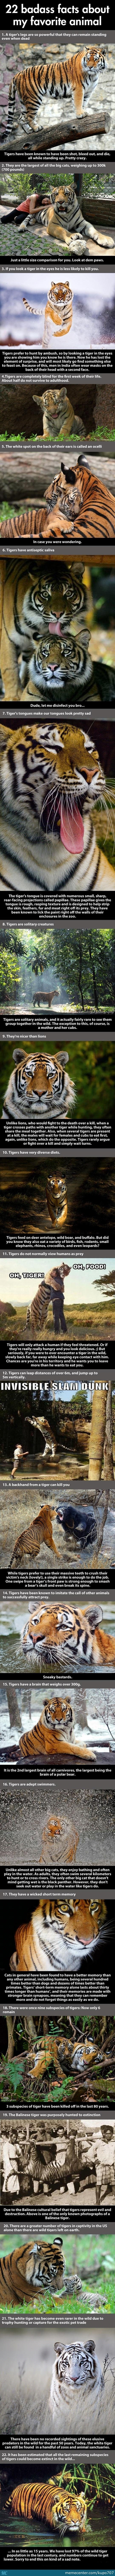 Awesome Tiger Facts